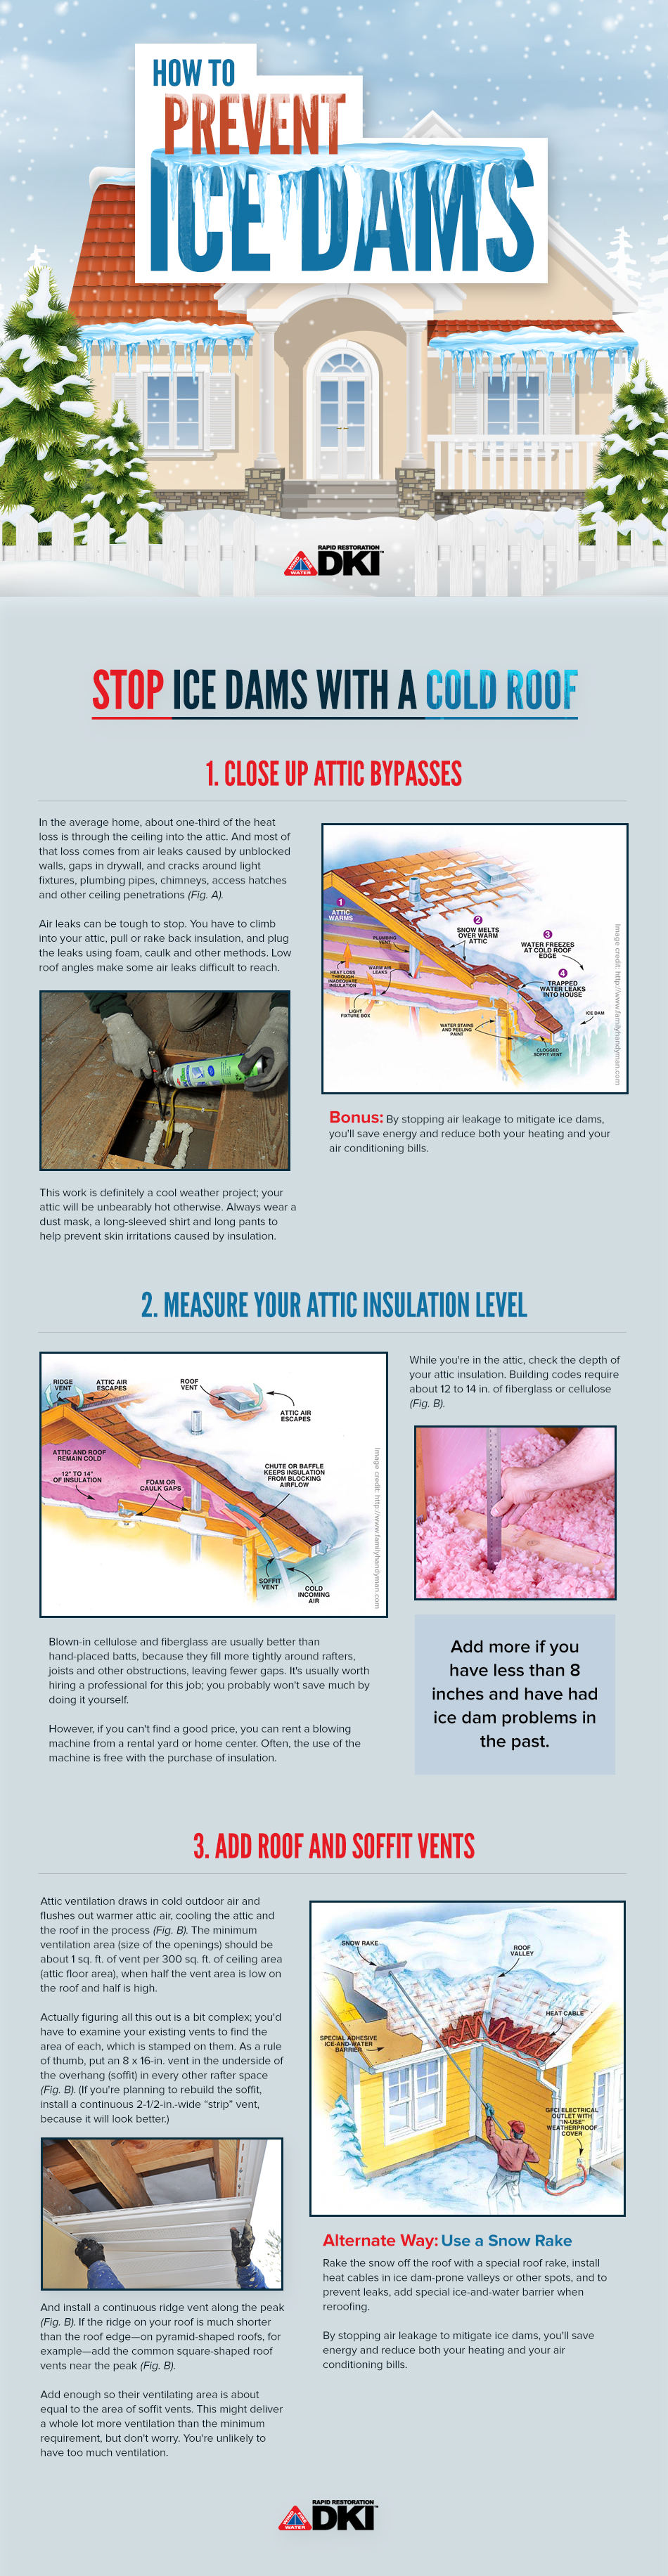 An infographic with information about how to prevent ice dams on your home.